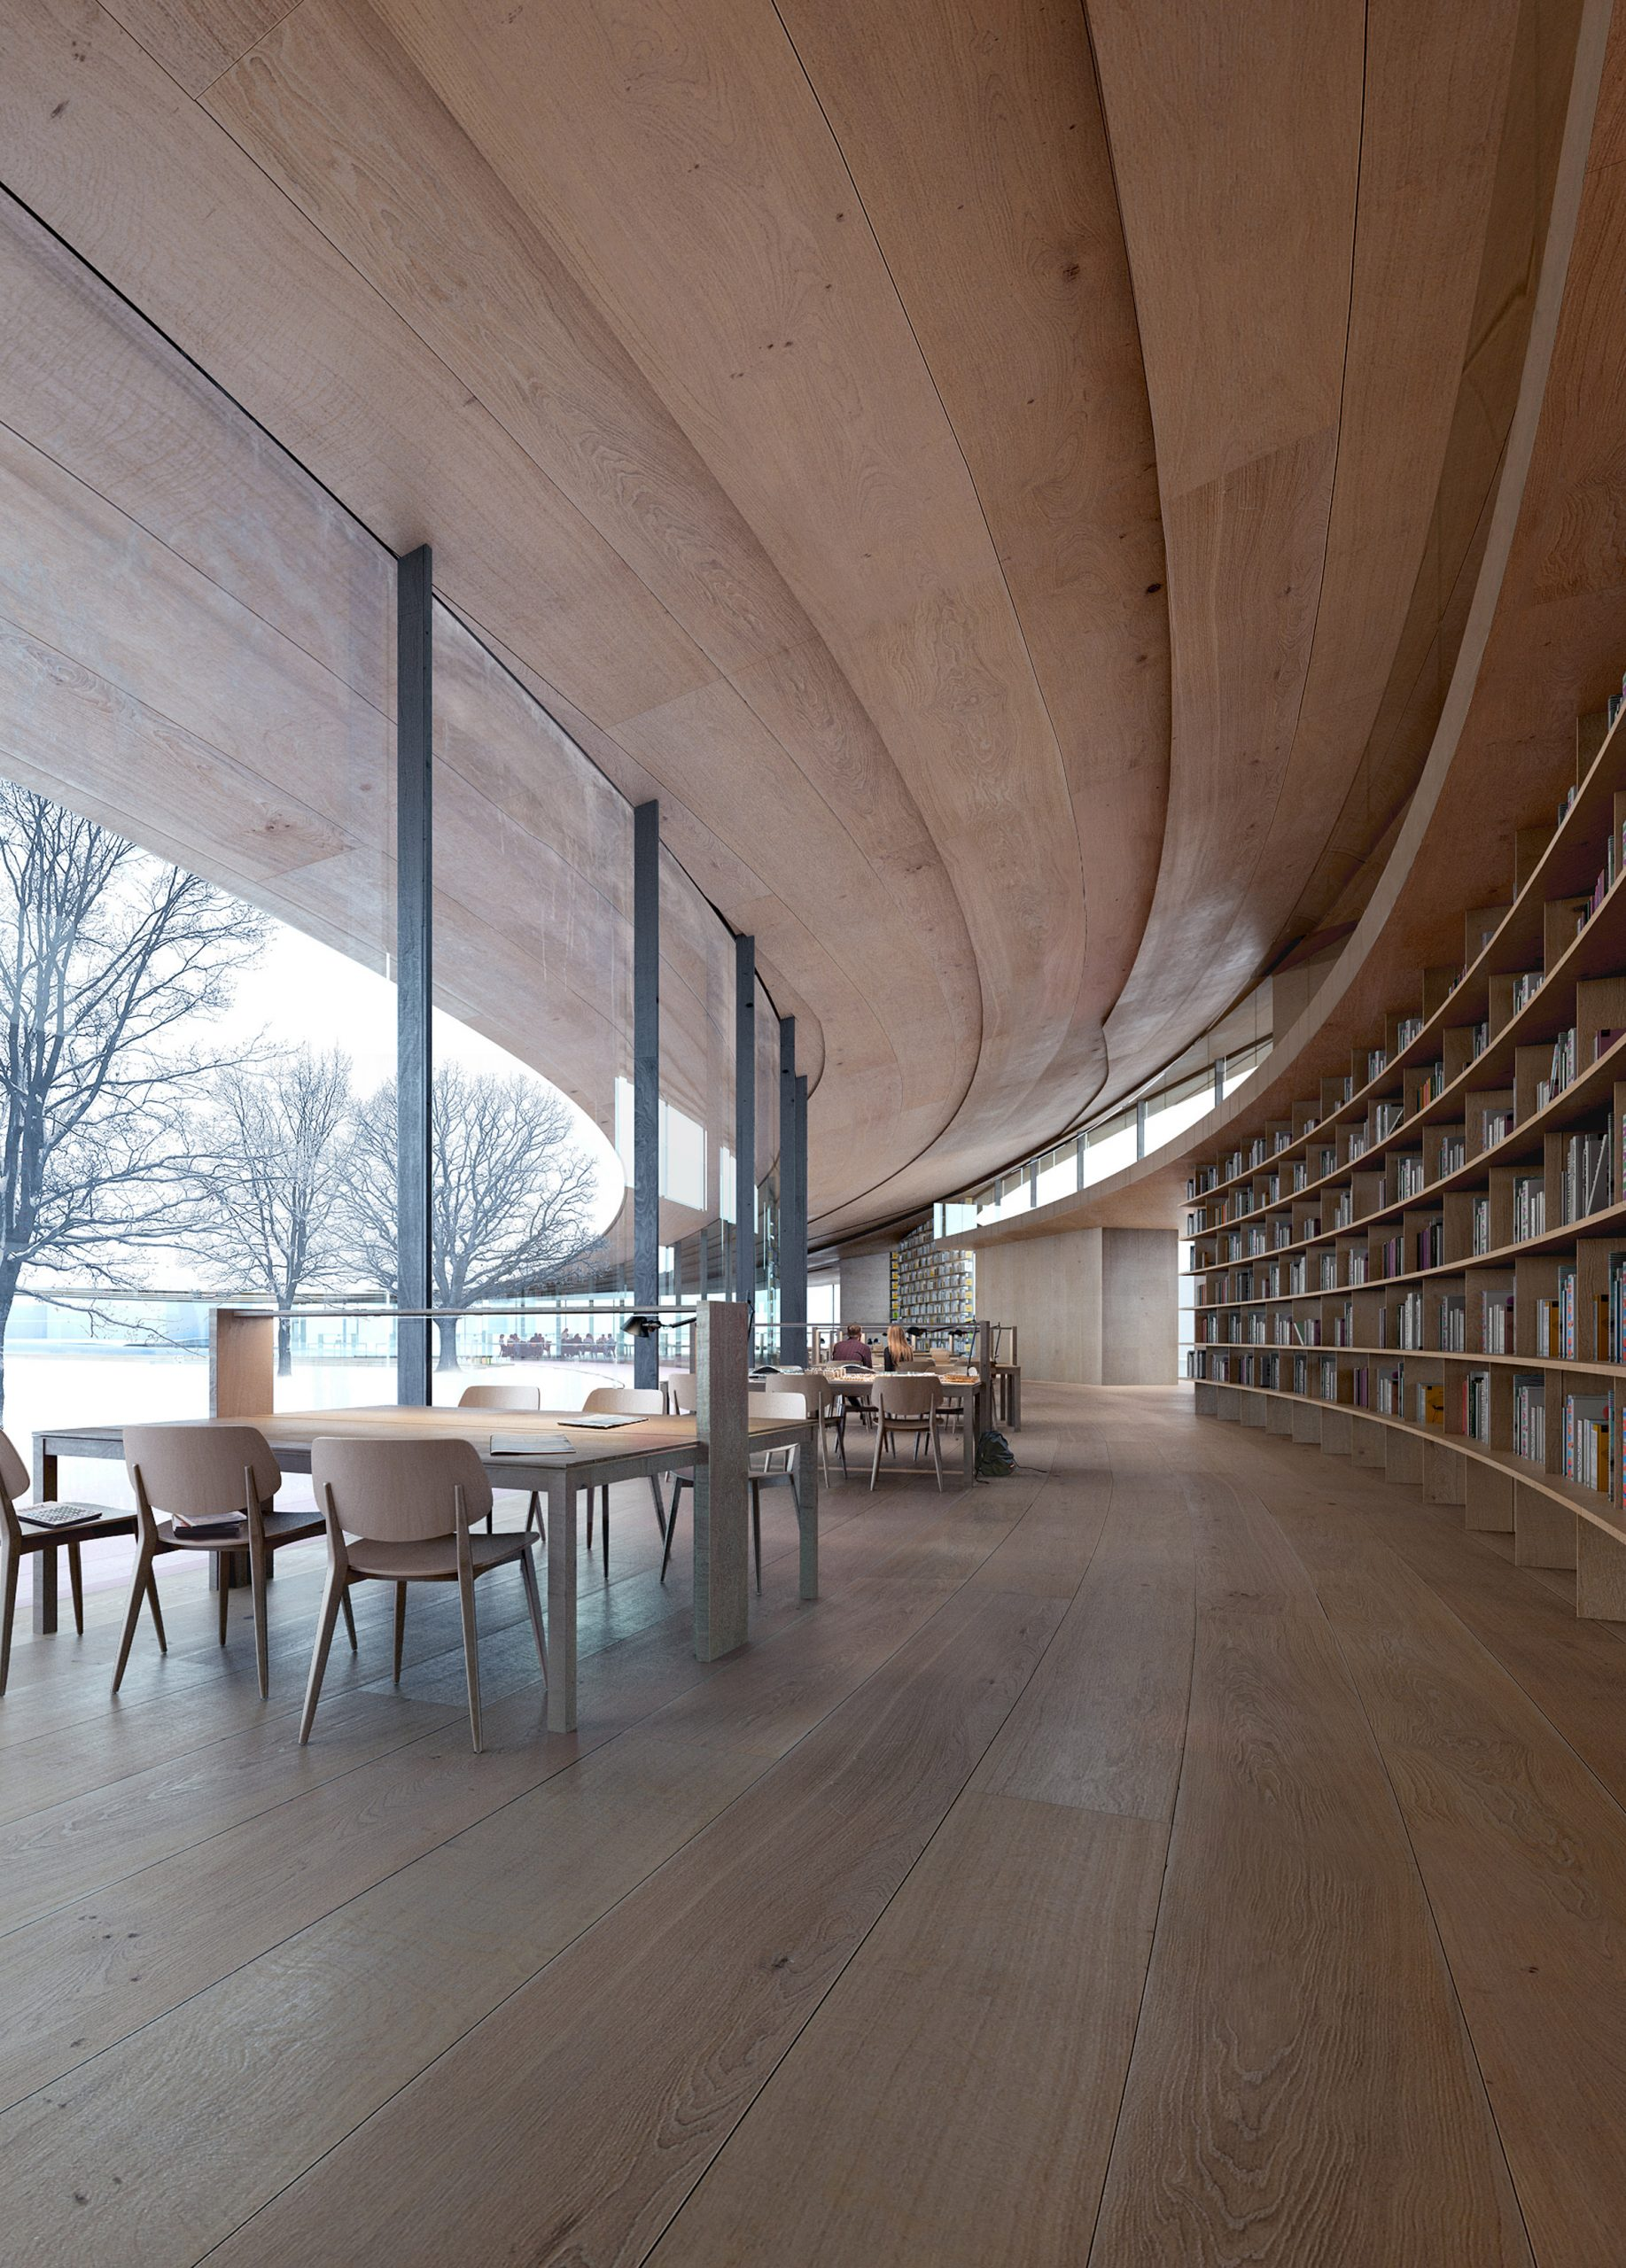 Take a look at the beautiful design for this Norwegian library dedicated to Henrik Ibsen.